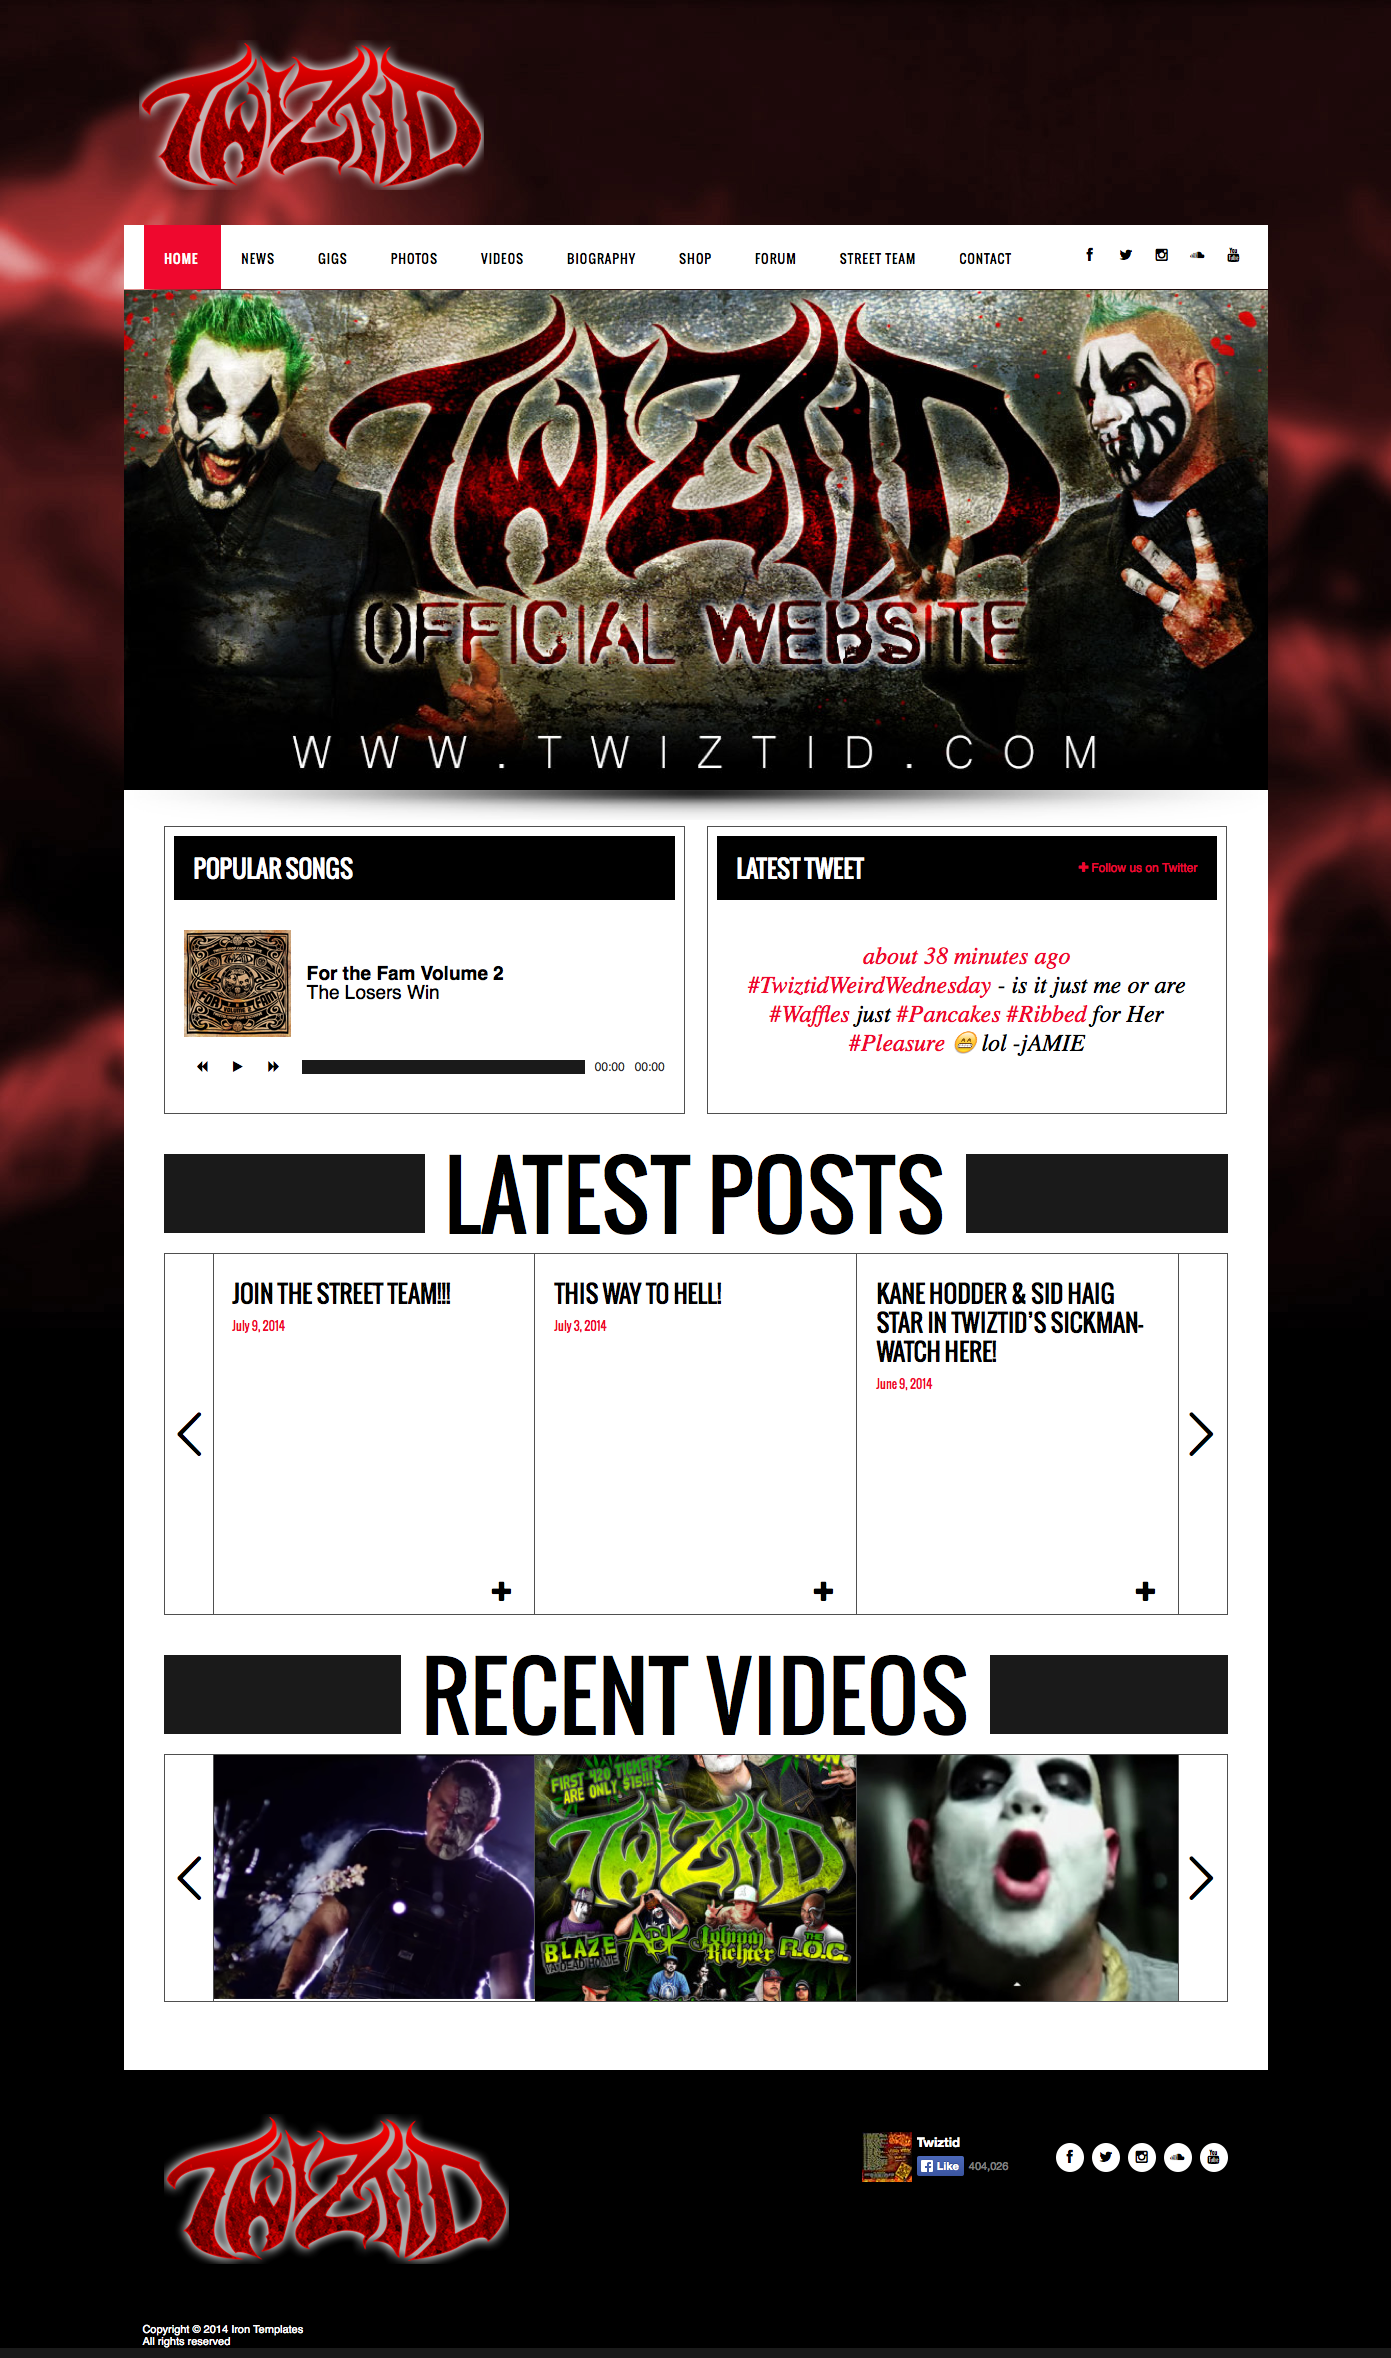 Twiztid_Official_Web_Site_—_Twiztid_-_2014-07-16_16.36.41.png